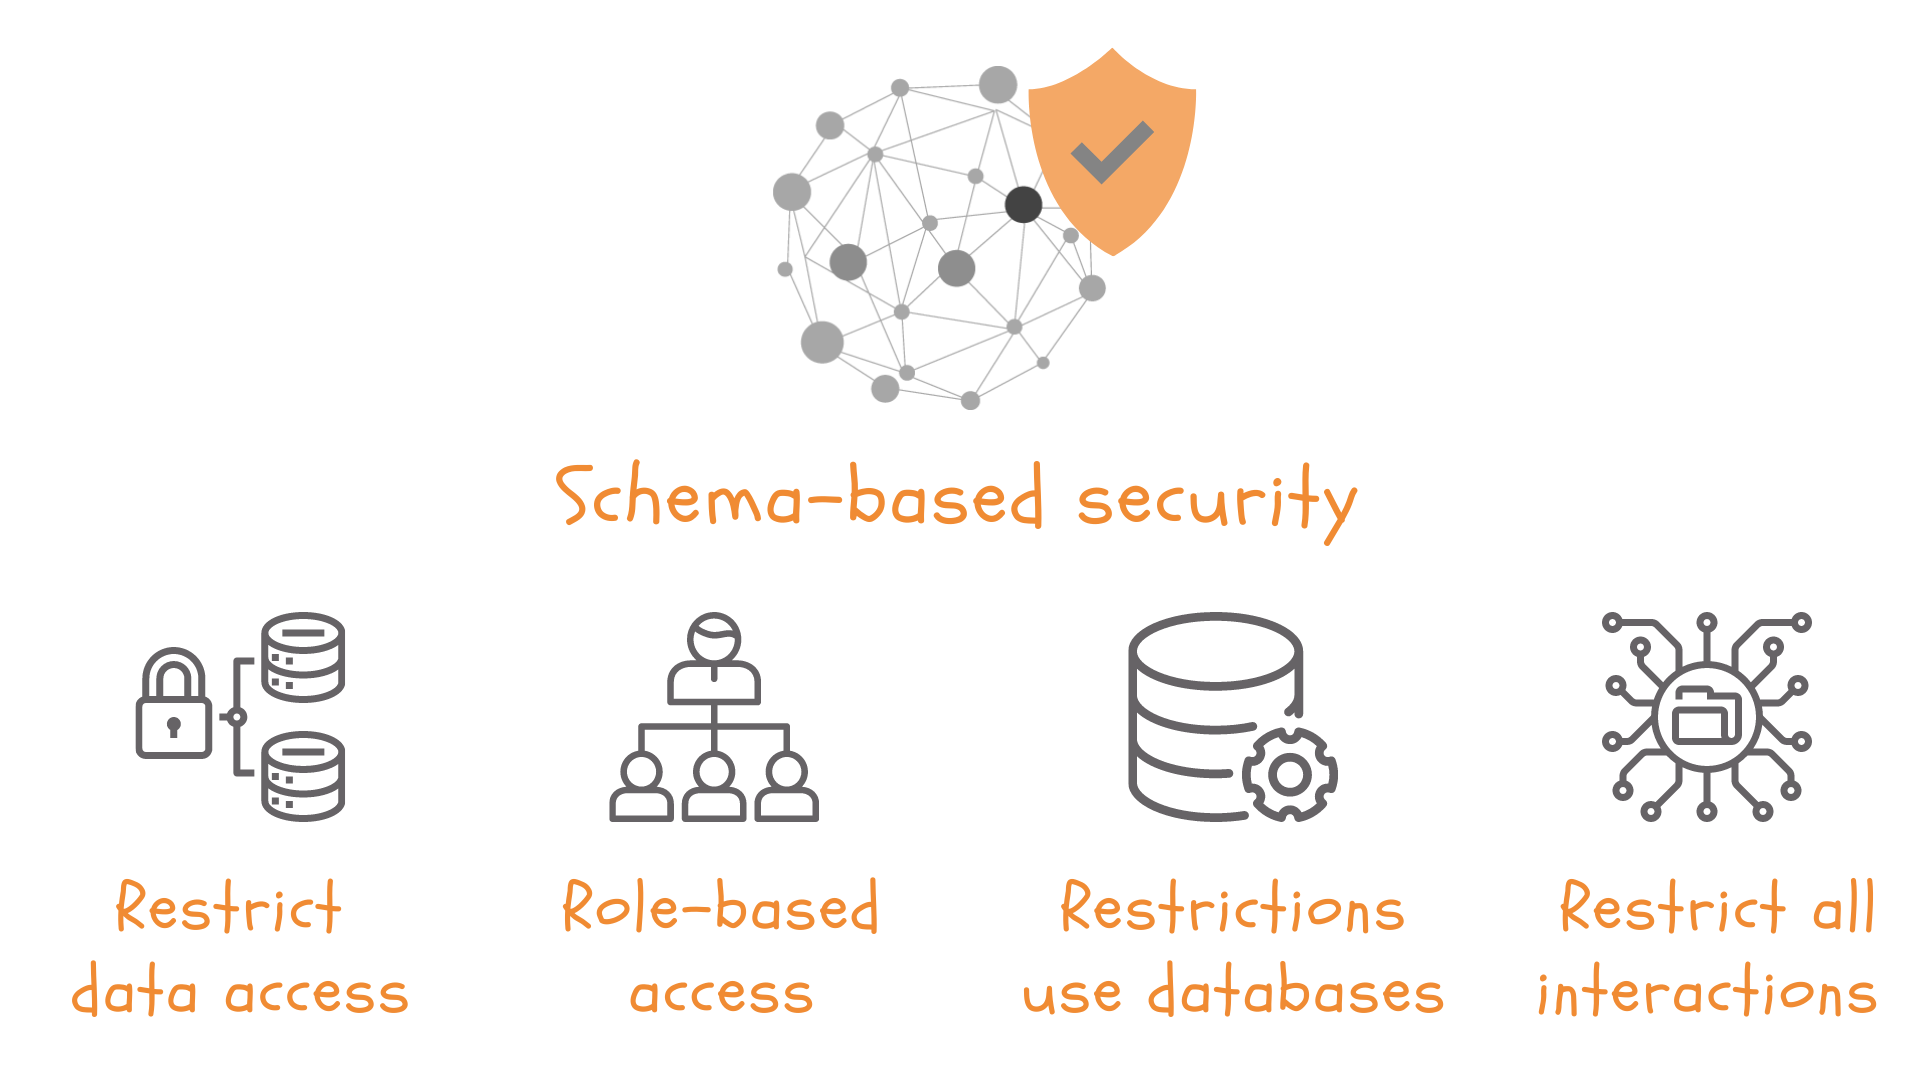 Schema-based security